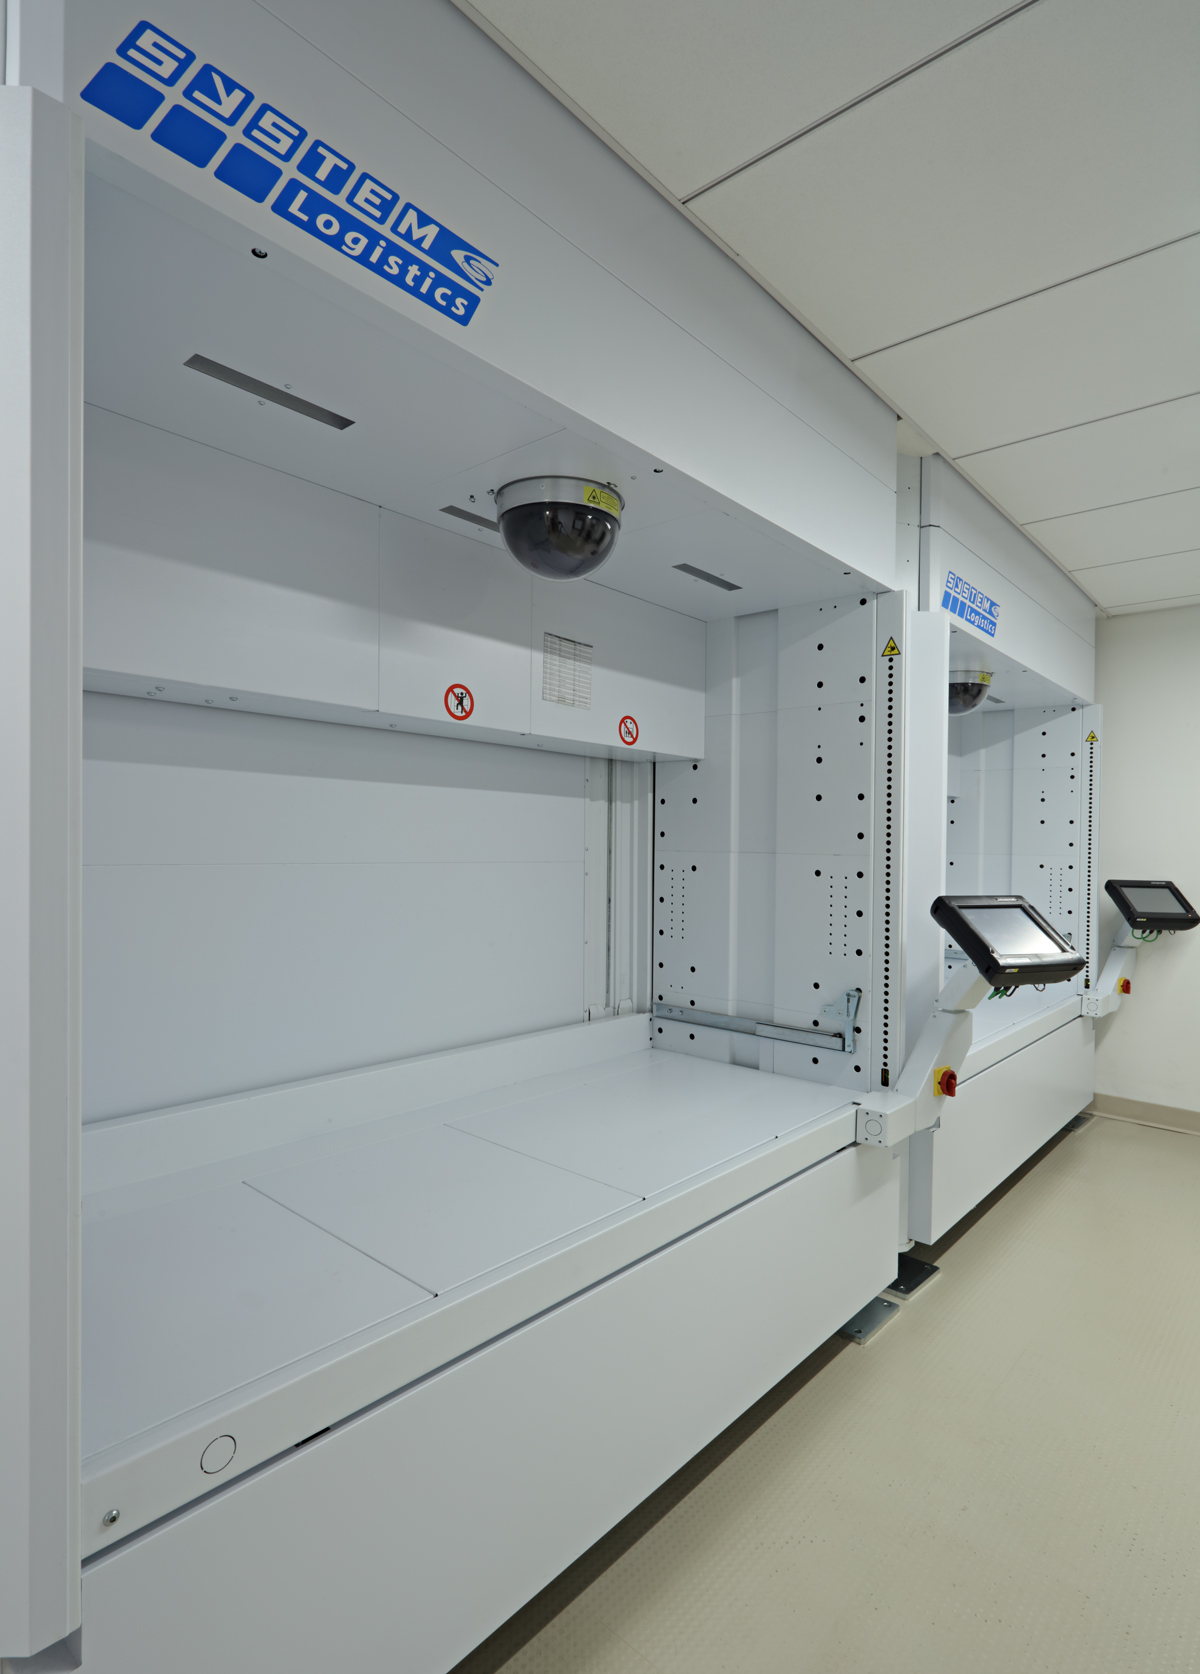 System logistics machine in the lab and office space of Symrise, New York. MEP designed by 2L Engineering.